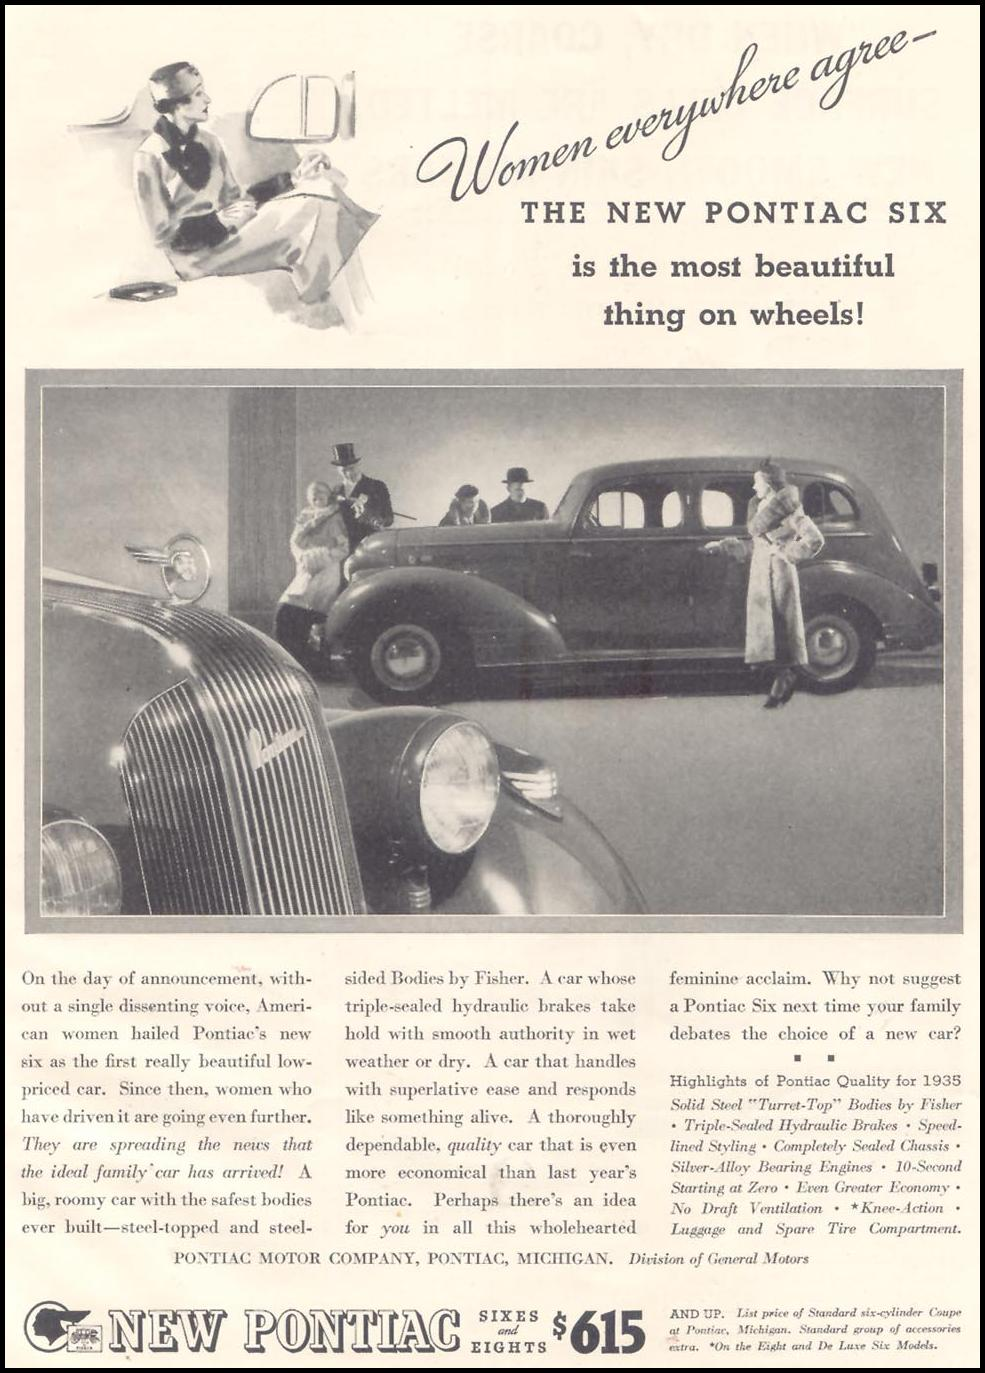 PONTIAC AUTOMOBILES GOOD HOUSEKEEPING 03/01/1935 p. 137